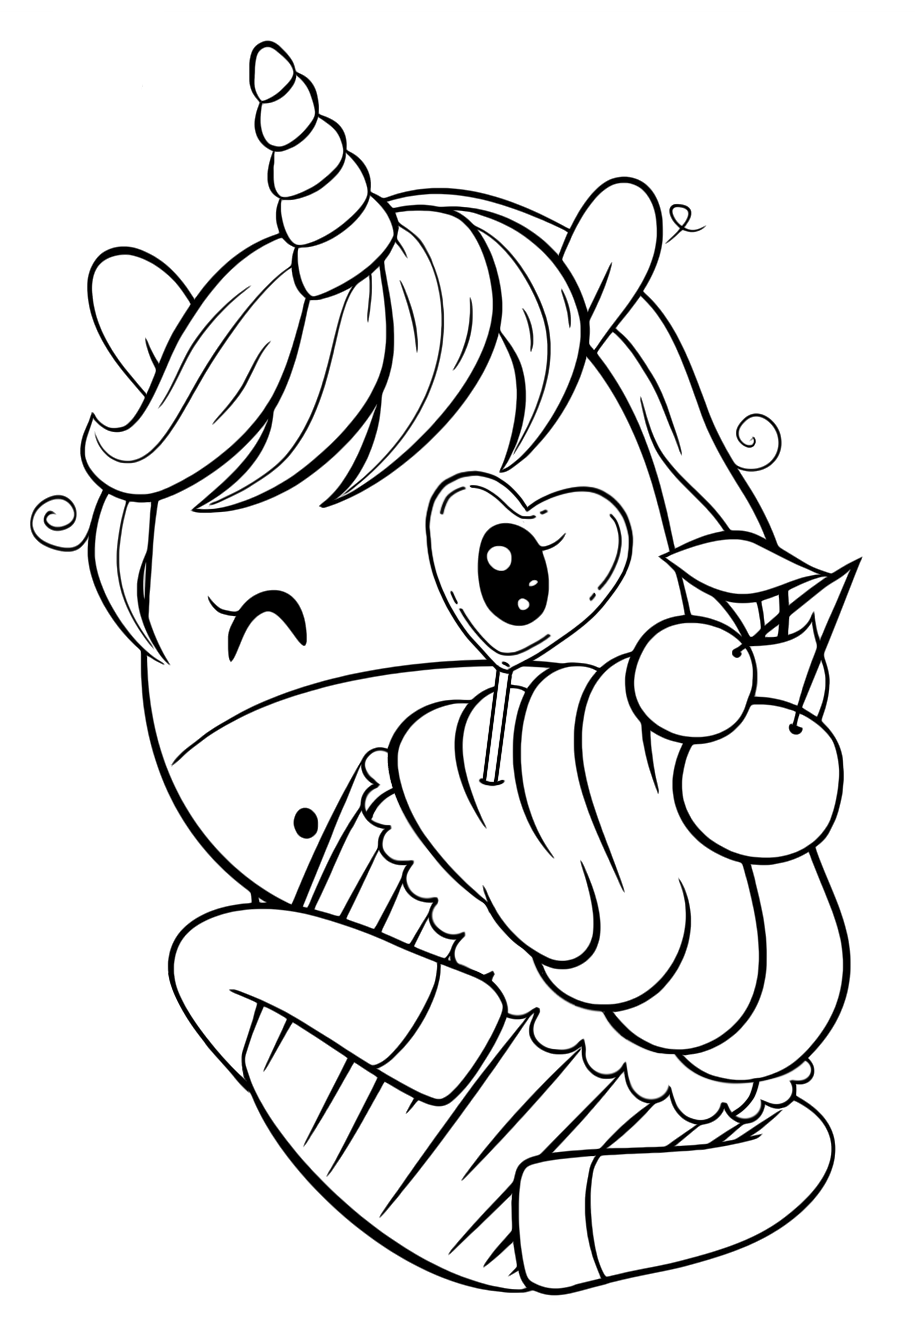 unicorn printables unicorn coloring pages princess luna print color craft printables unicorn